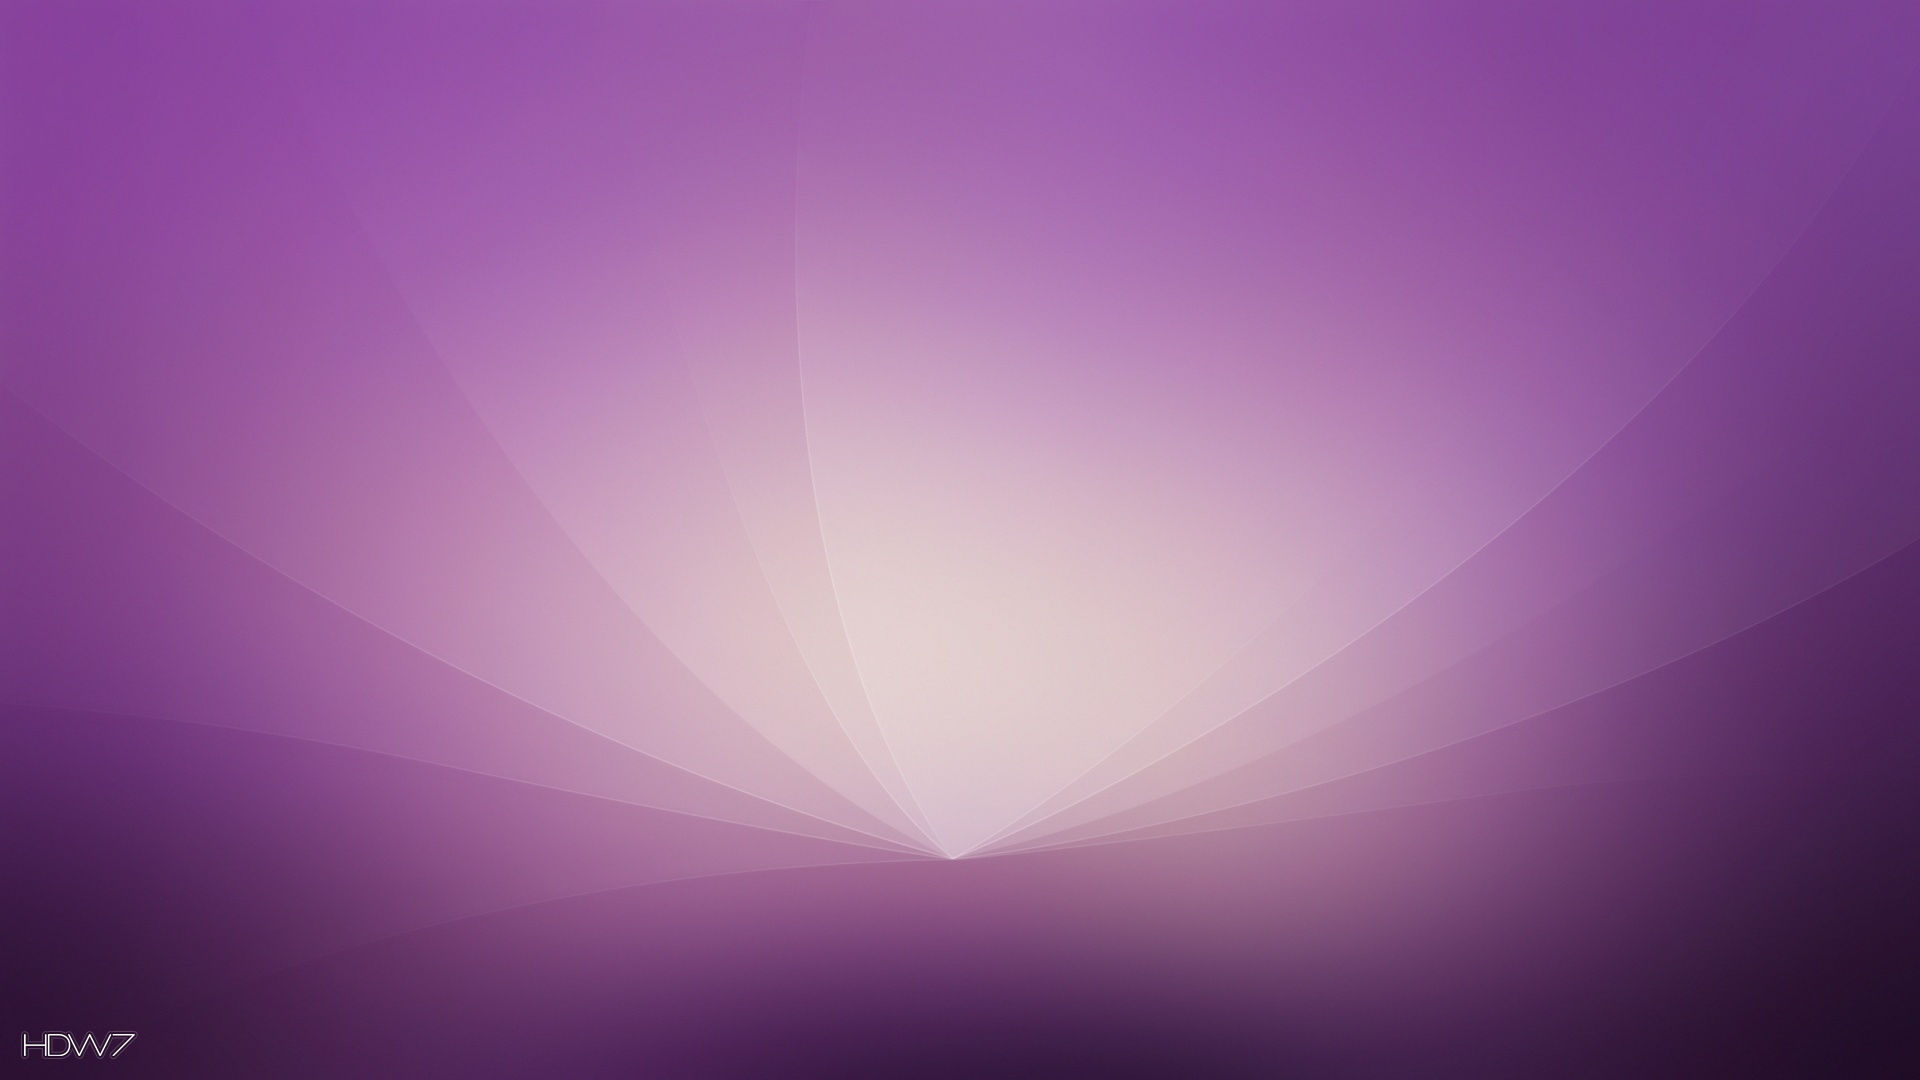 simple clean abstract purple wallpaper 1920x1080 | hd wallpaper